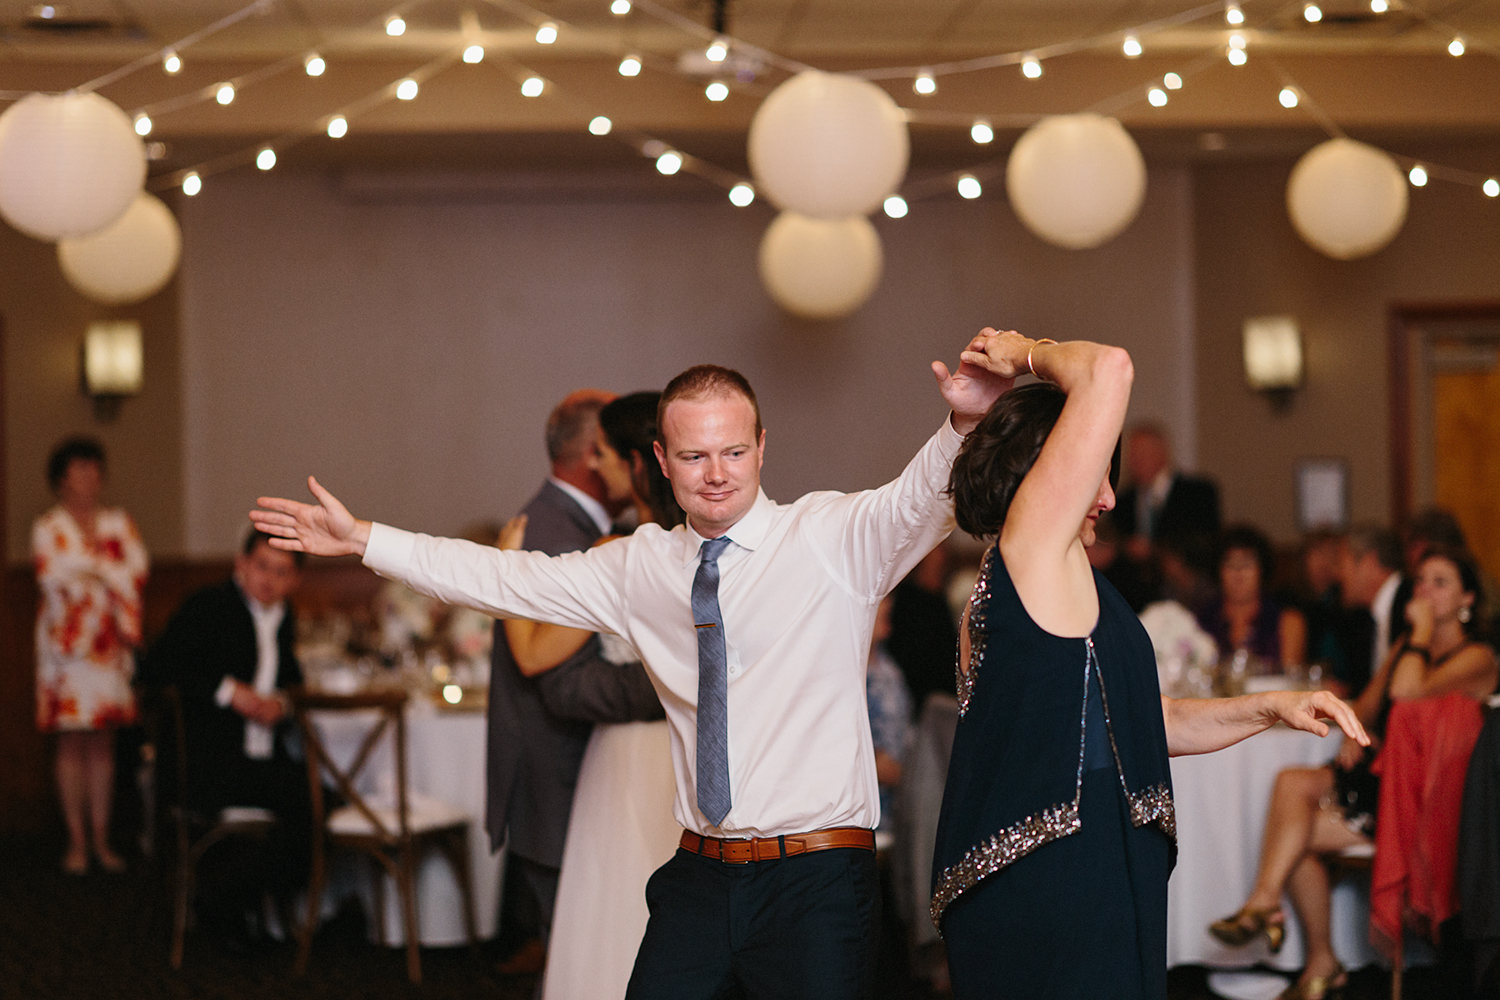 mother-son-dance-candid-cute-funny-reception-At-Eganridge-Resort-Venue-Muskoka-Ontario-Wedding-Photography-by-Ryanne-Hollies-Photography-Toronto-Documentary-Wedding-Photographer.jpg